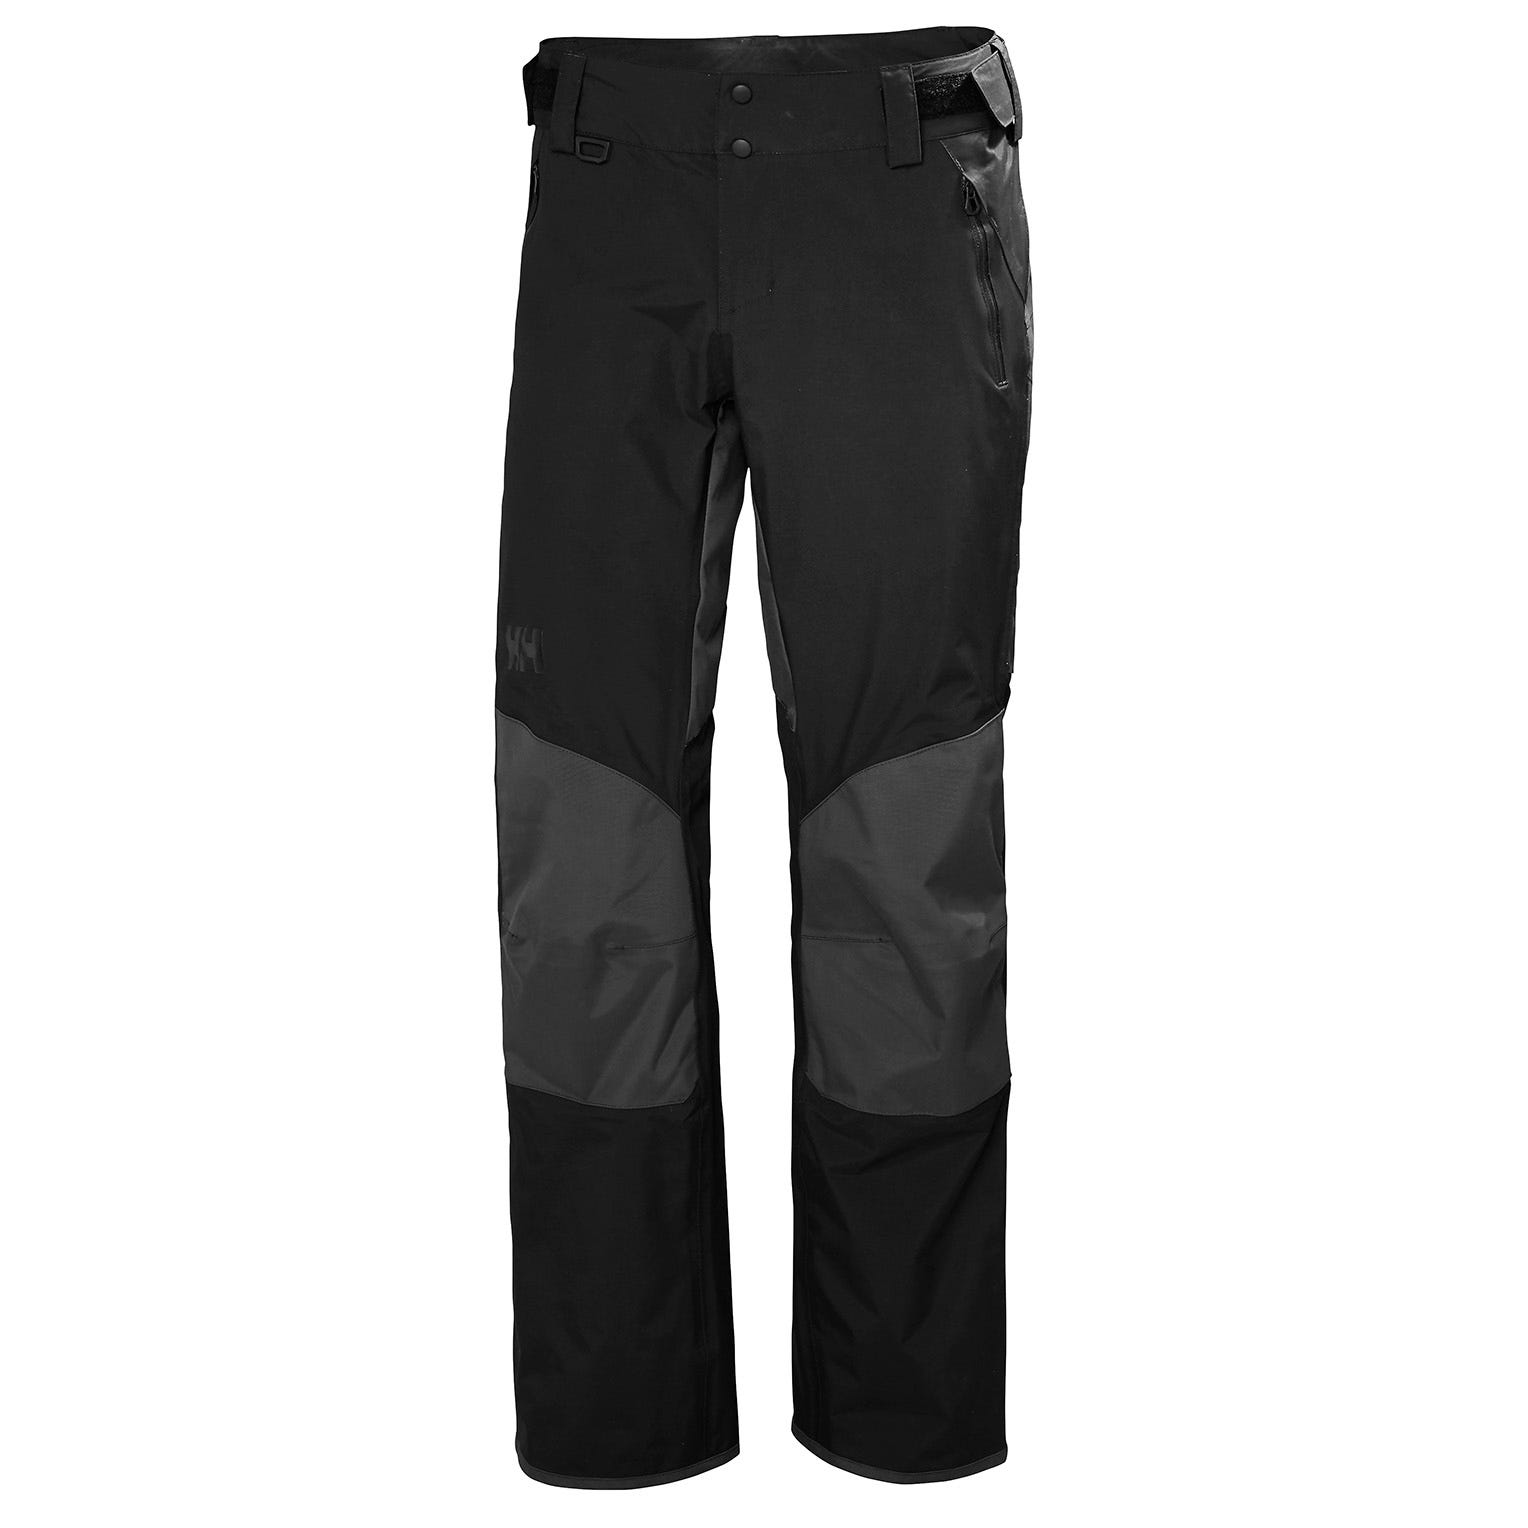 Helly Hansen Womens Hp Foil Sailing Trouser Black L